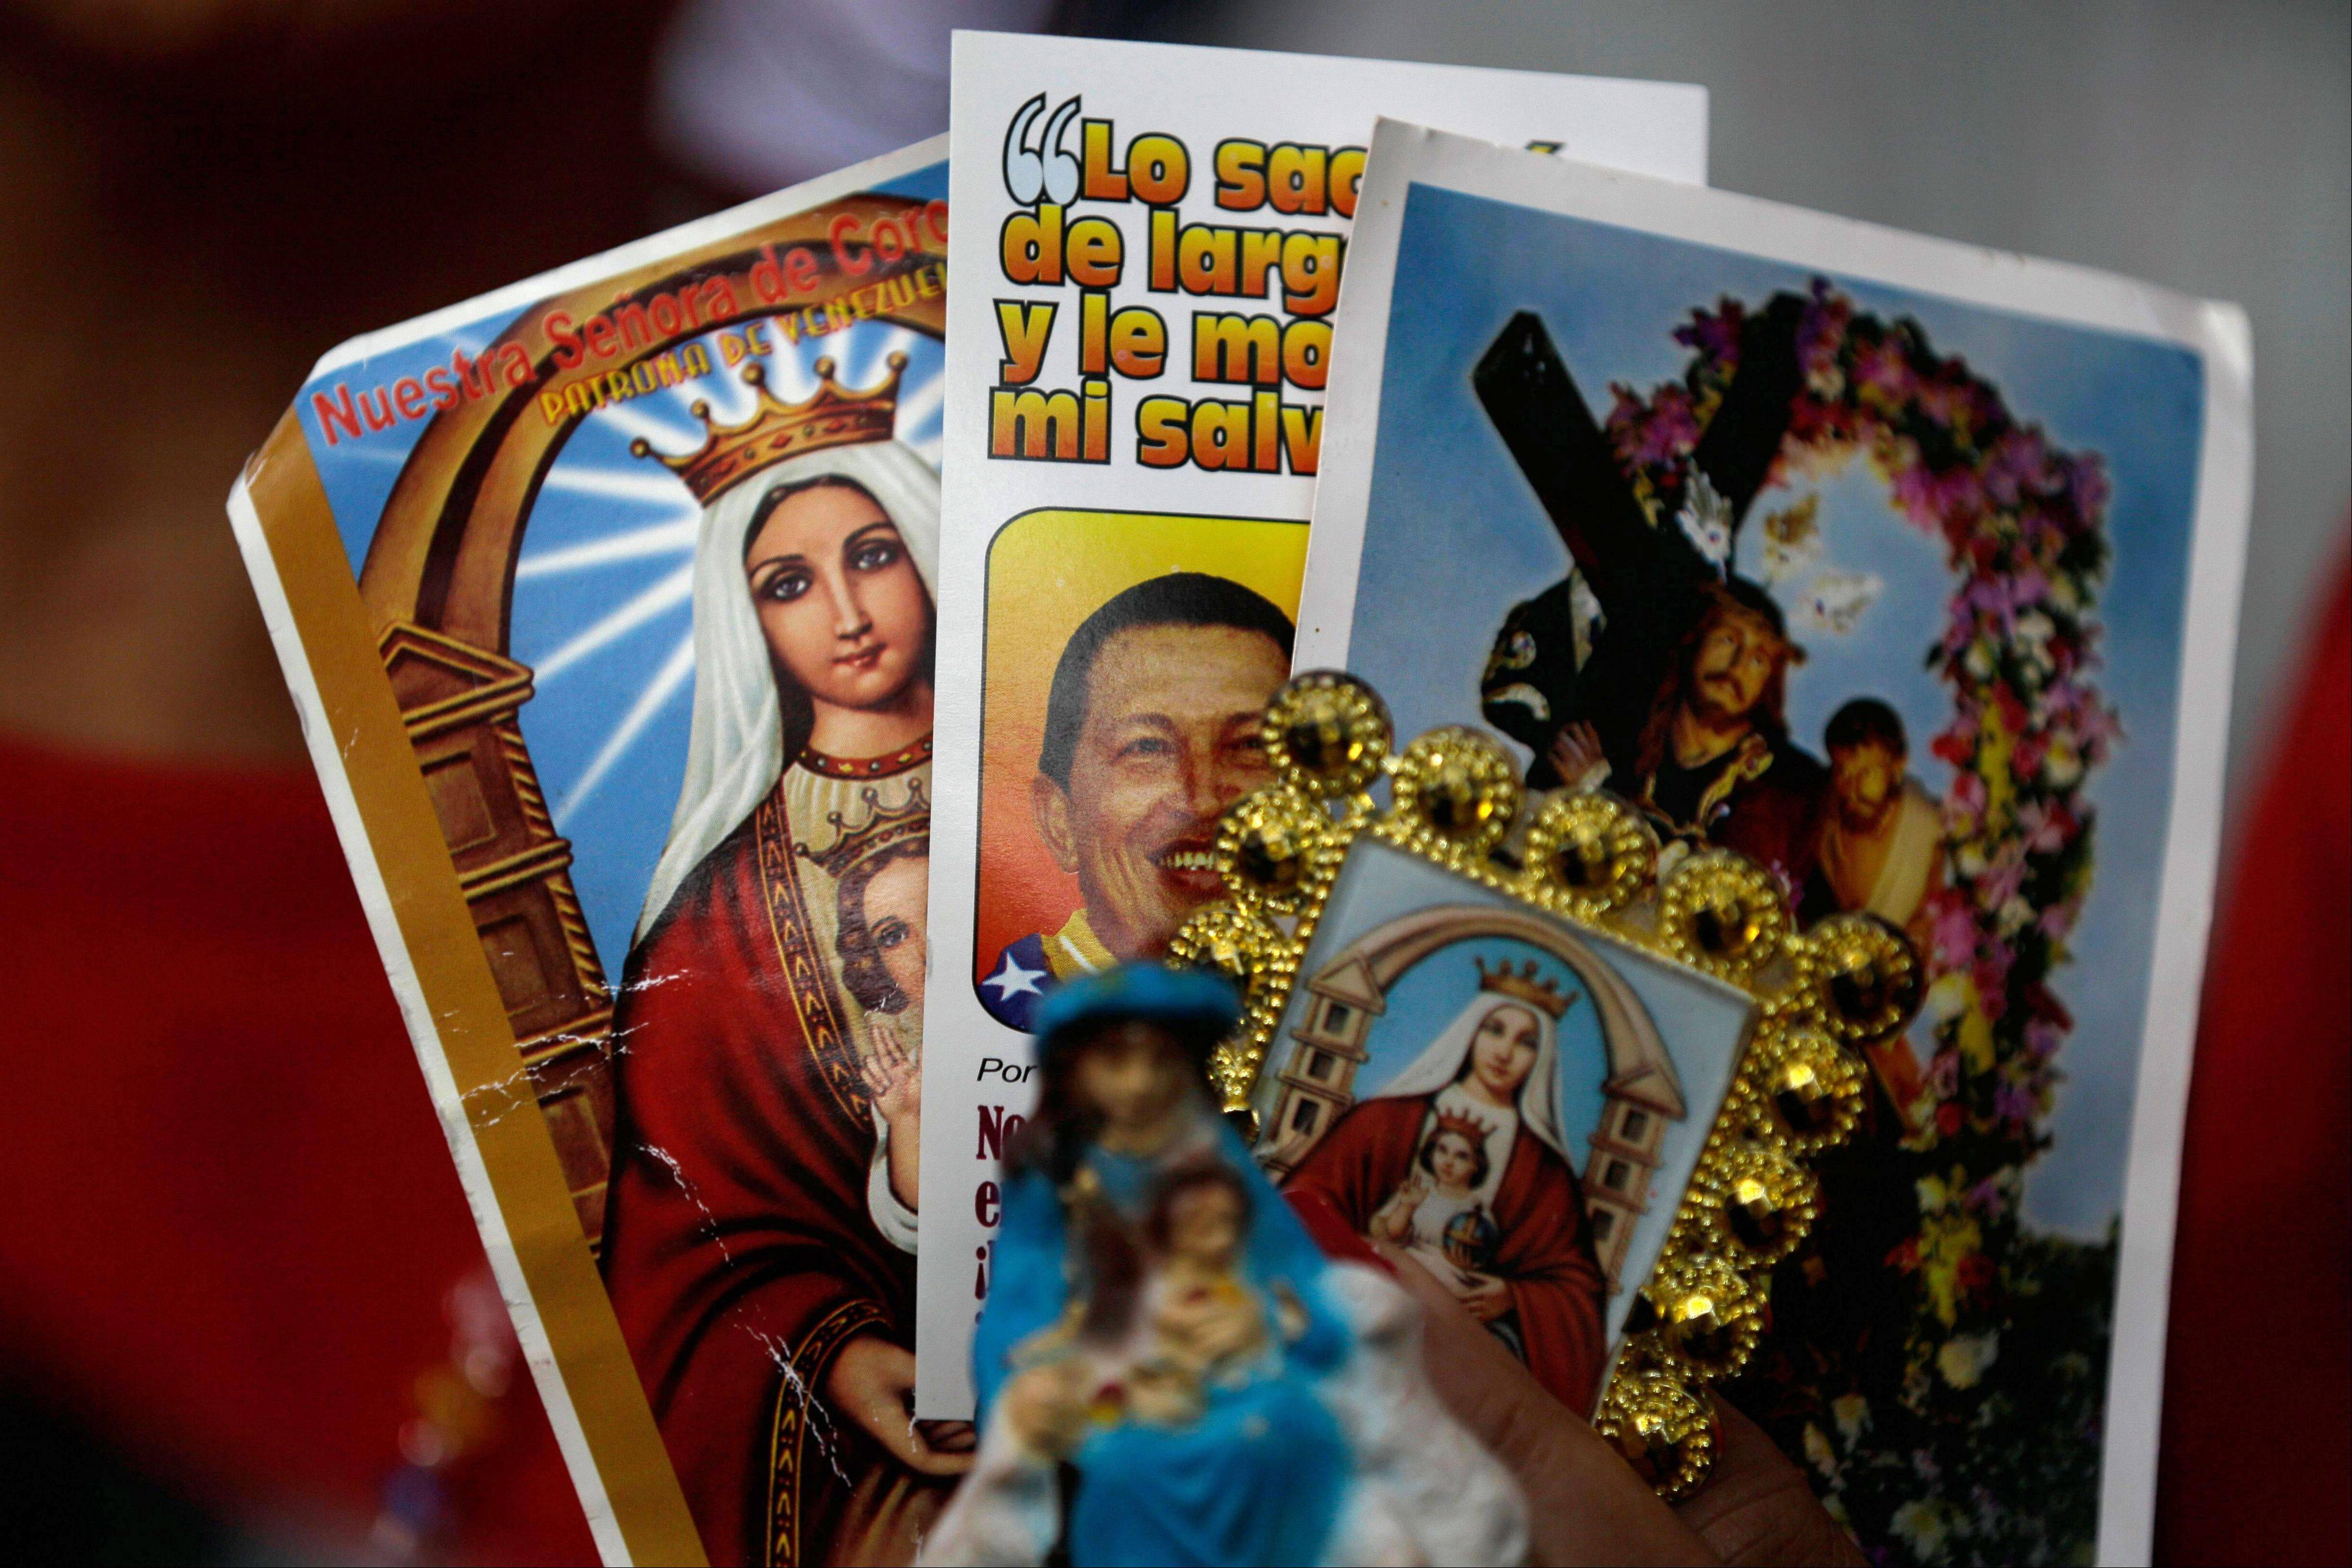 A person holds up an image of Venezuela�s President Hugo Chavez among religious images during a demonstration in support of him at the Simon Bolivar square in Caracas, Venezuela, Sunday.